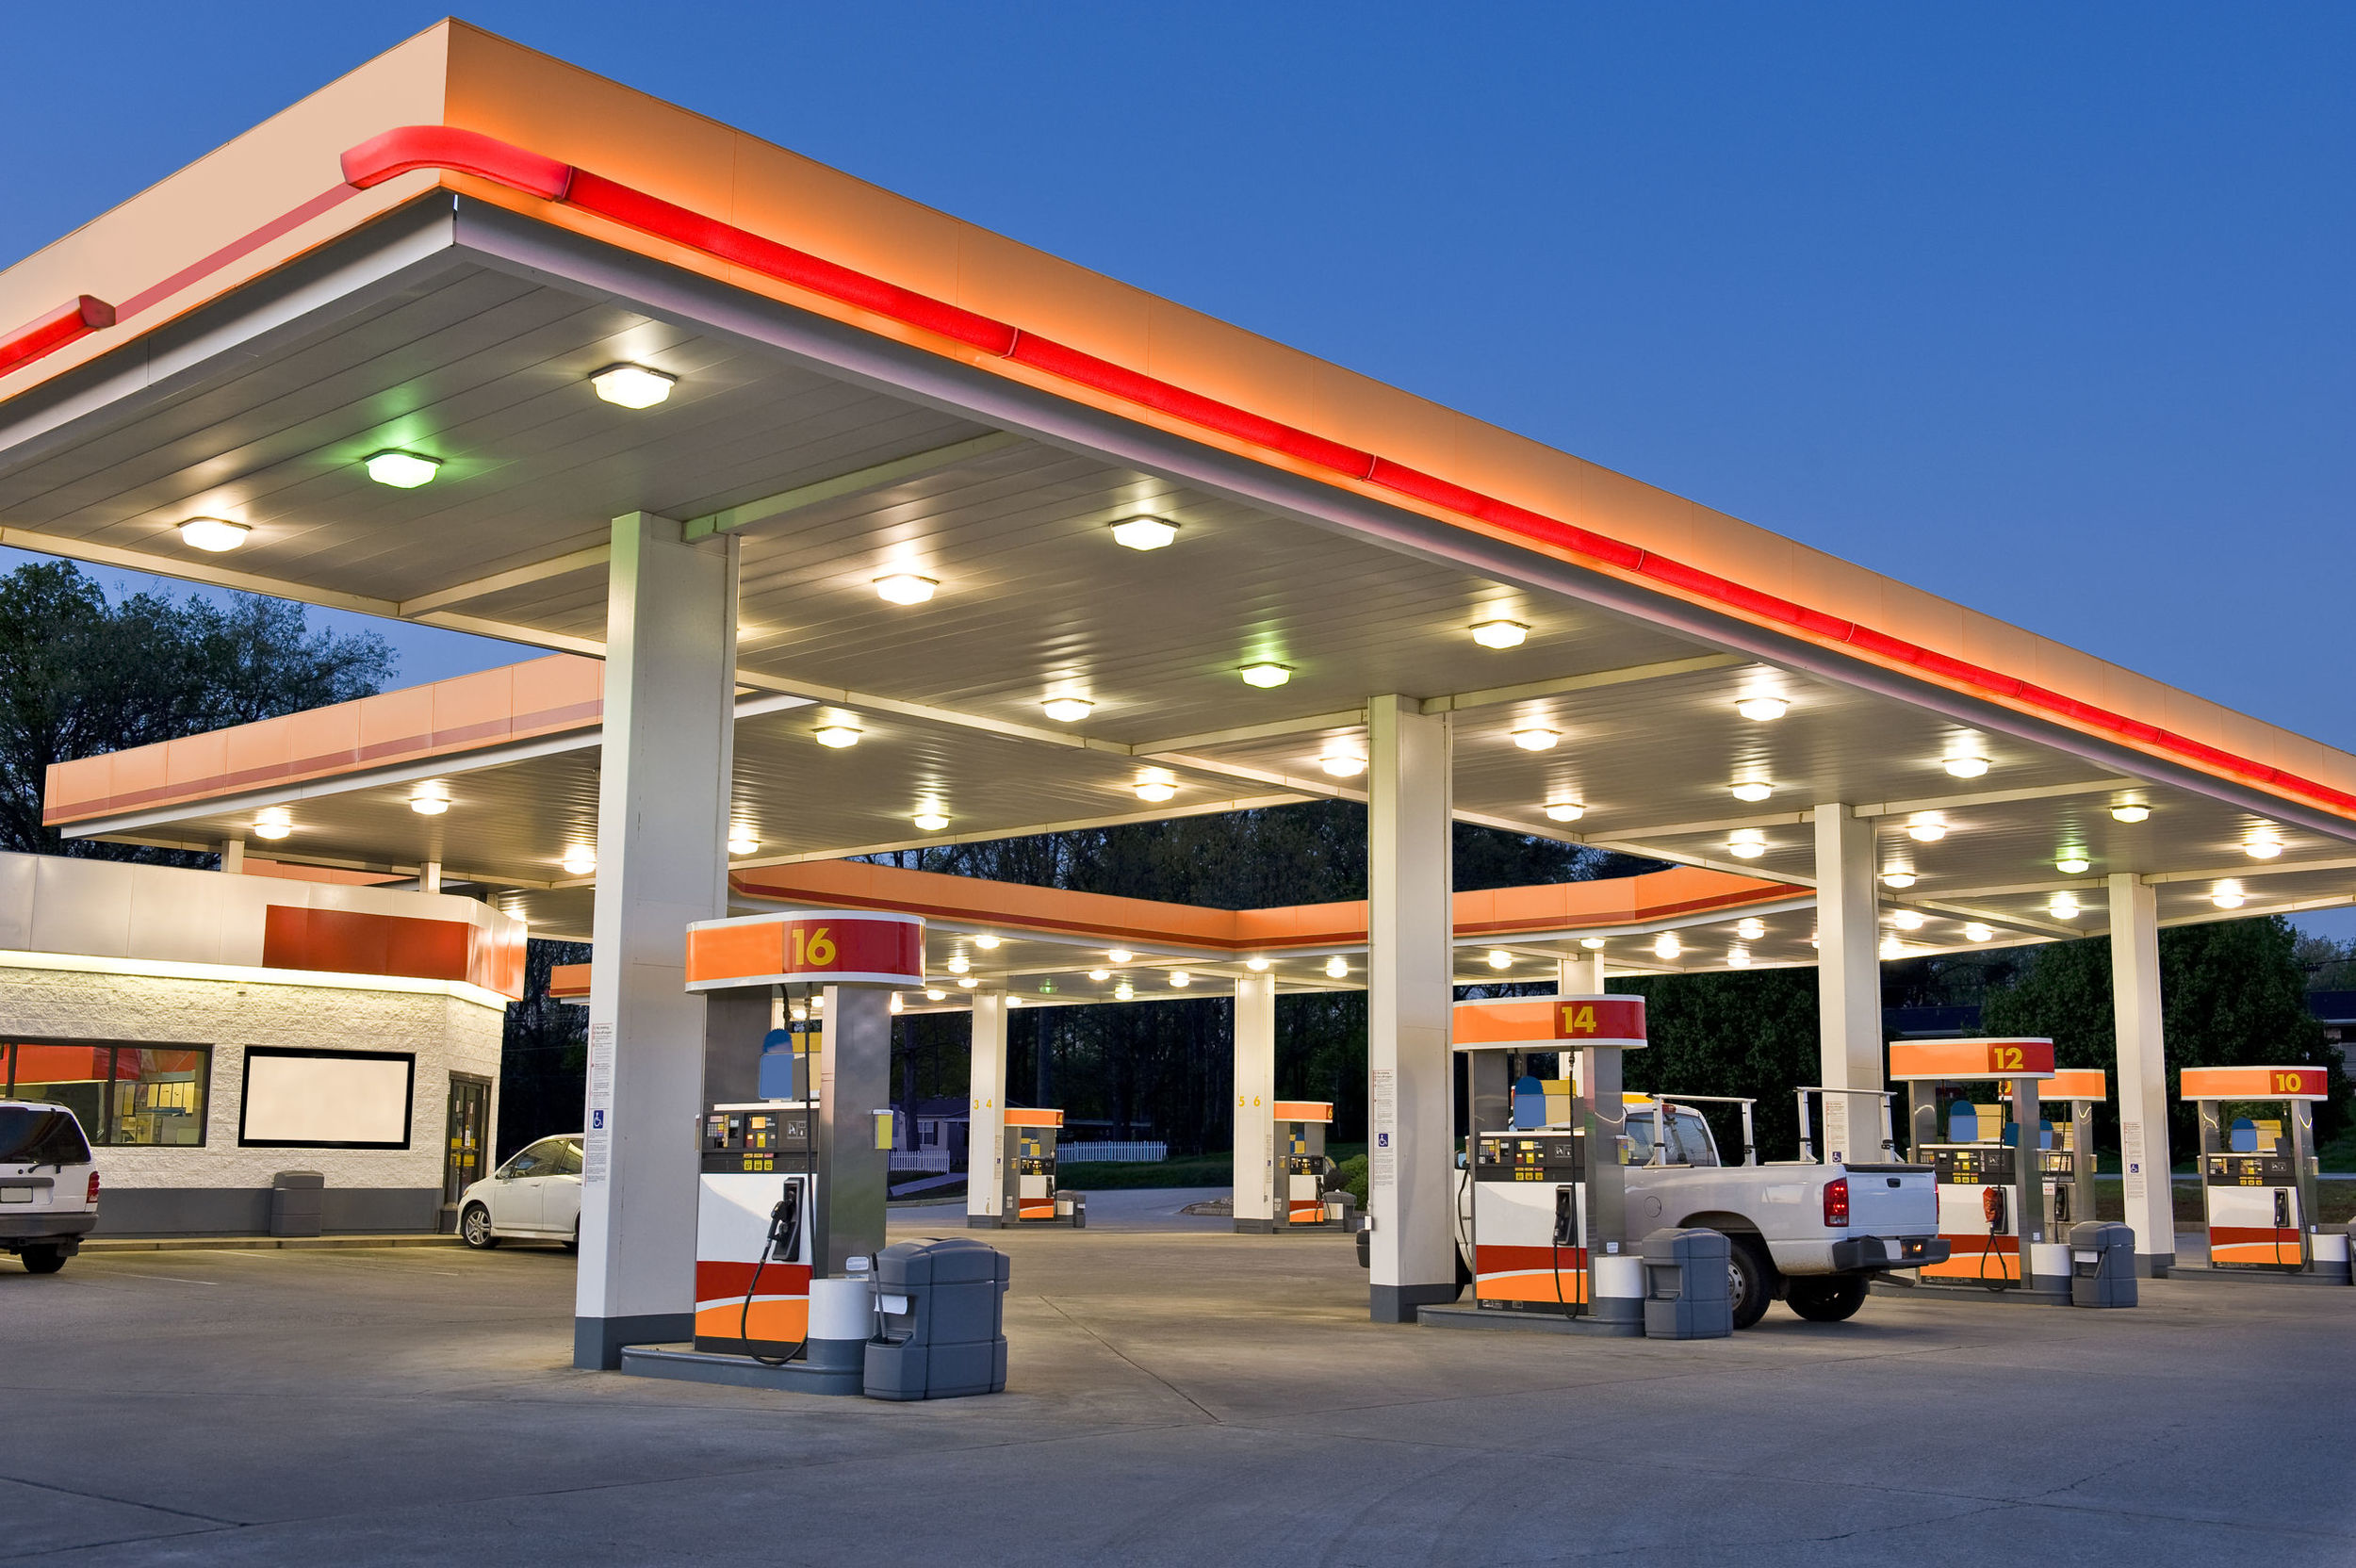 OPTIMIZE PRICING PERFORMANCE FROM FORECOURT TO STORE